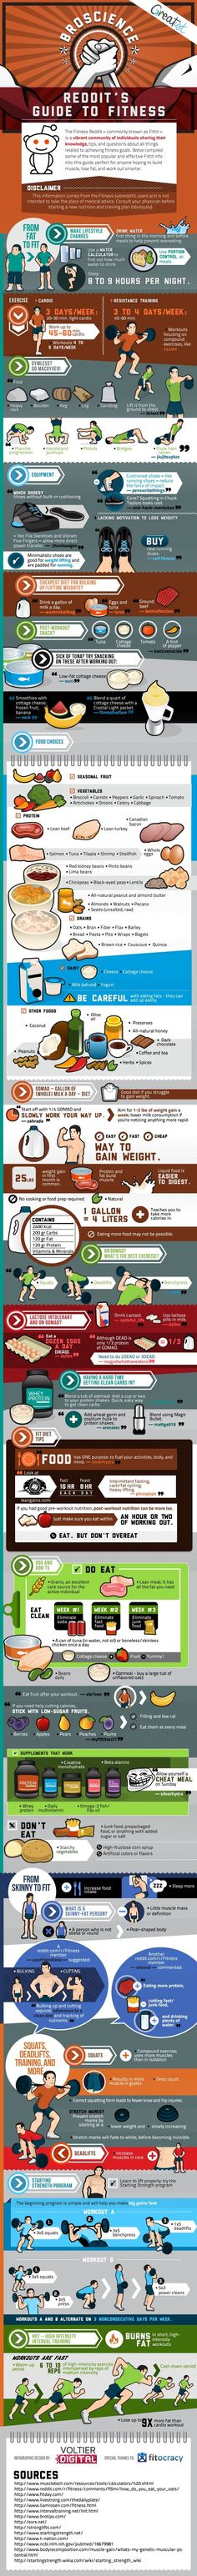 Guide to fitness